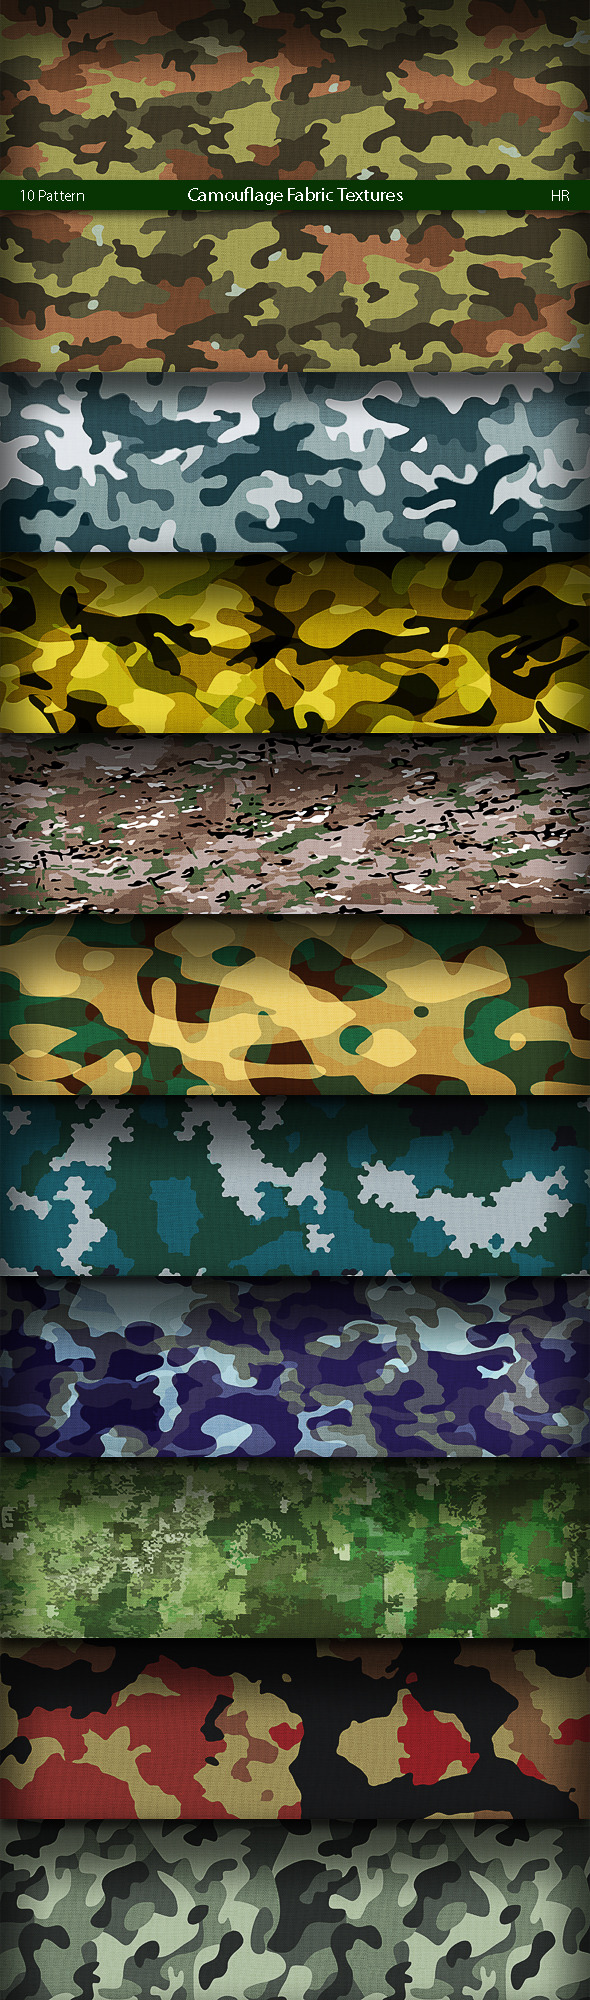 Camouflage Fabric Patterns - Textures / Fills / Patterns Photoshop